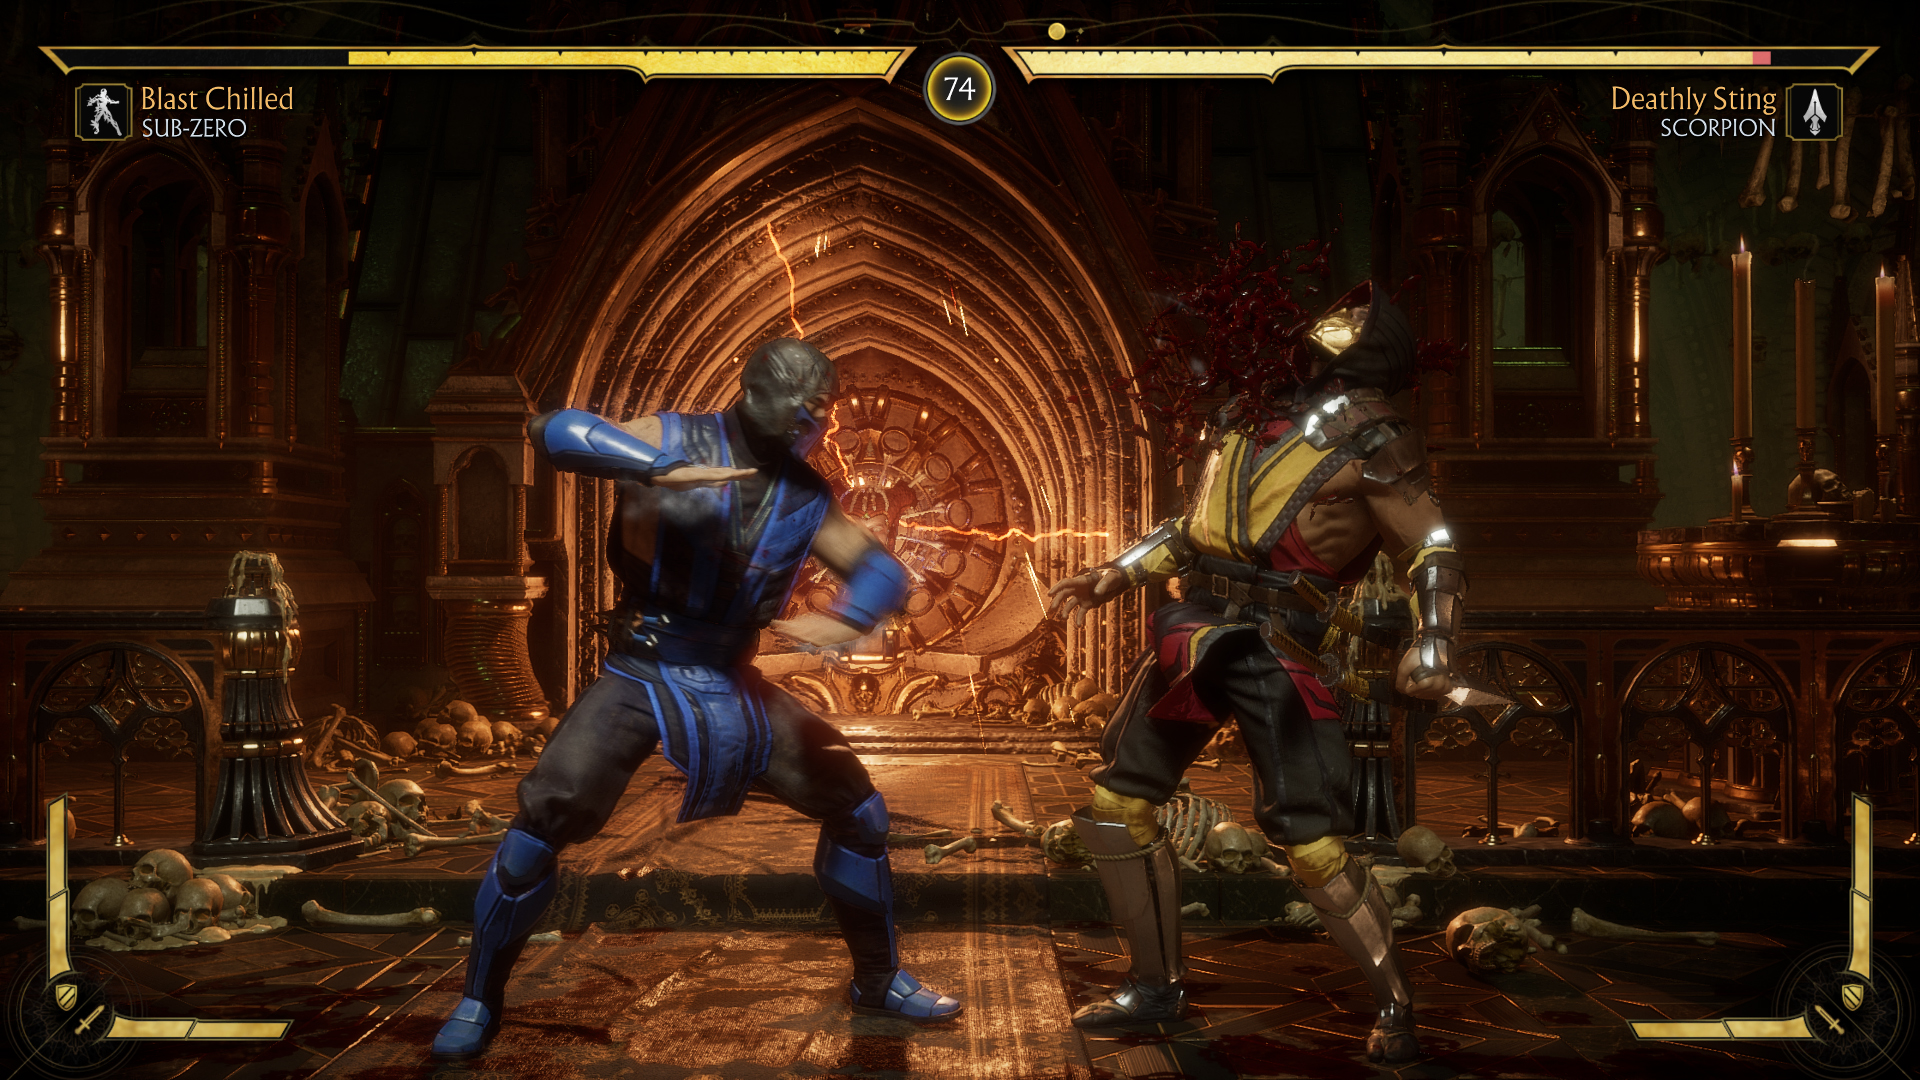 mortal kombat 11 archives